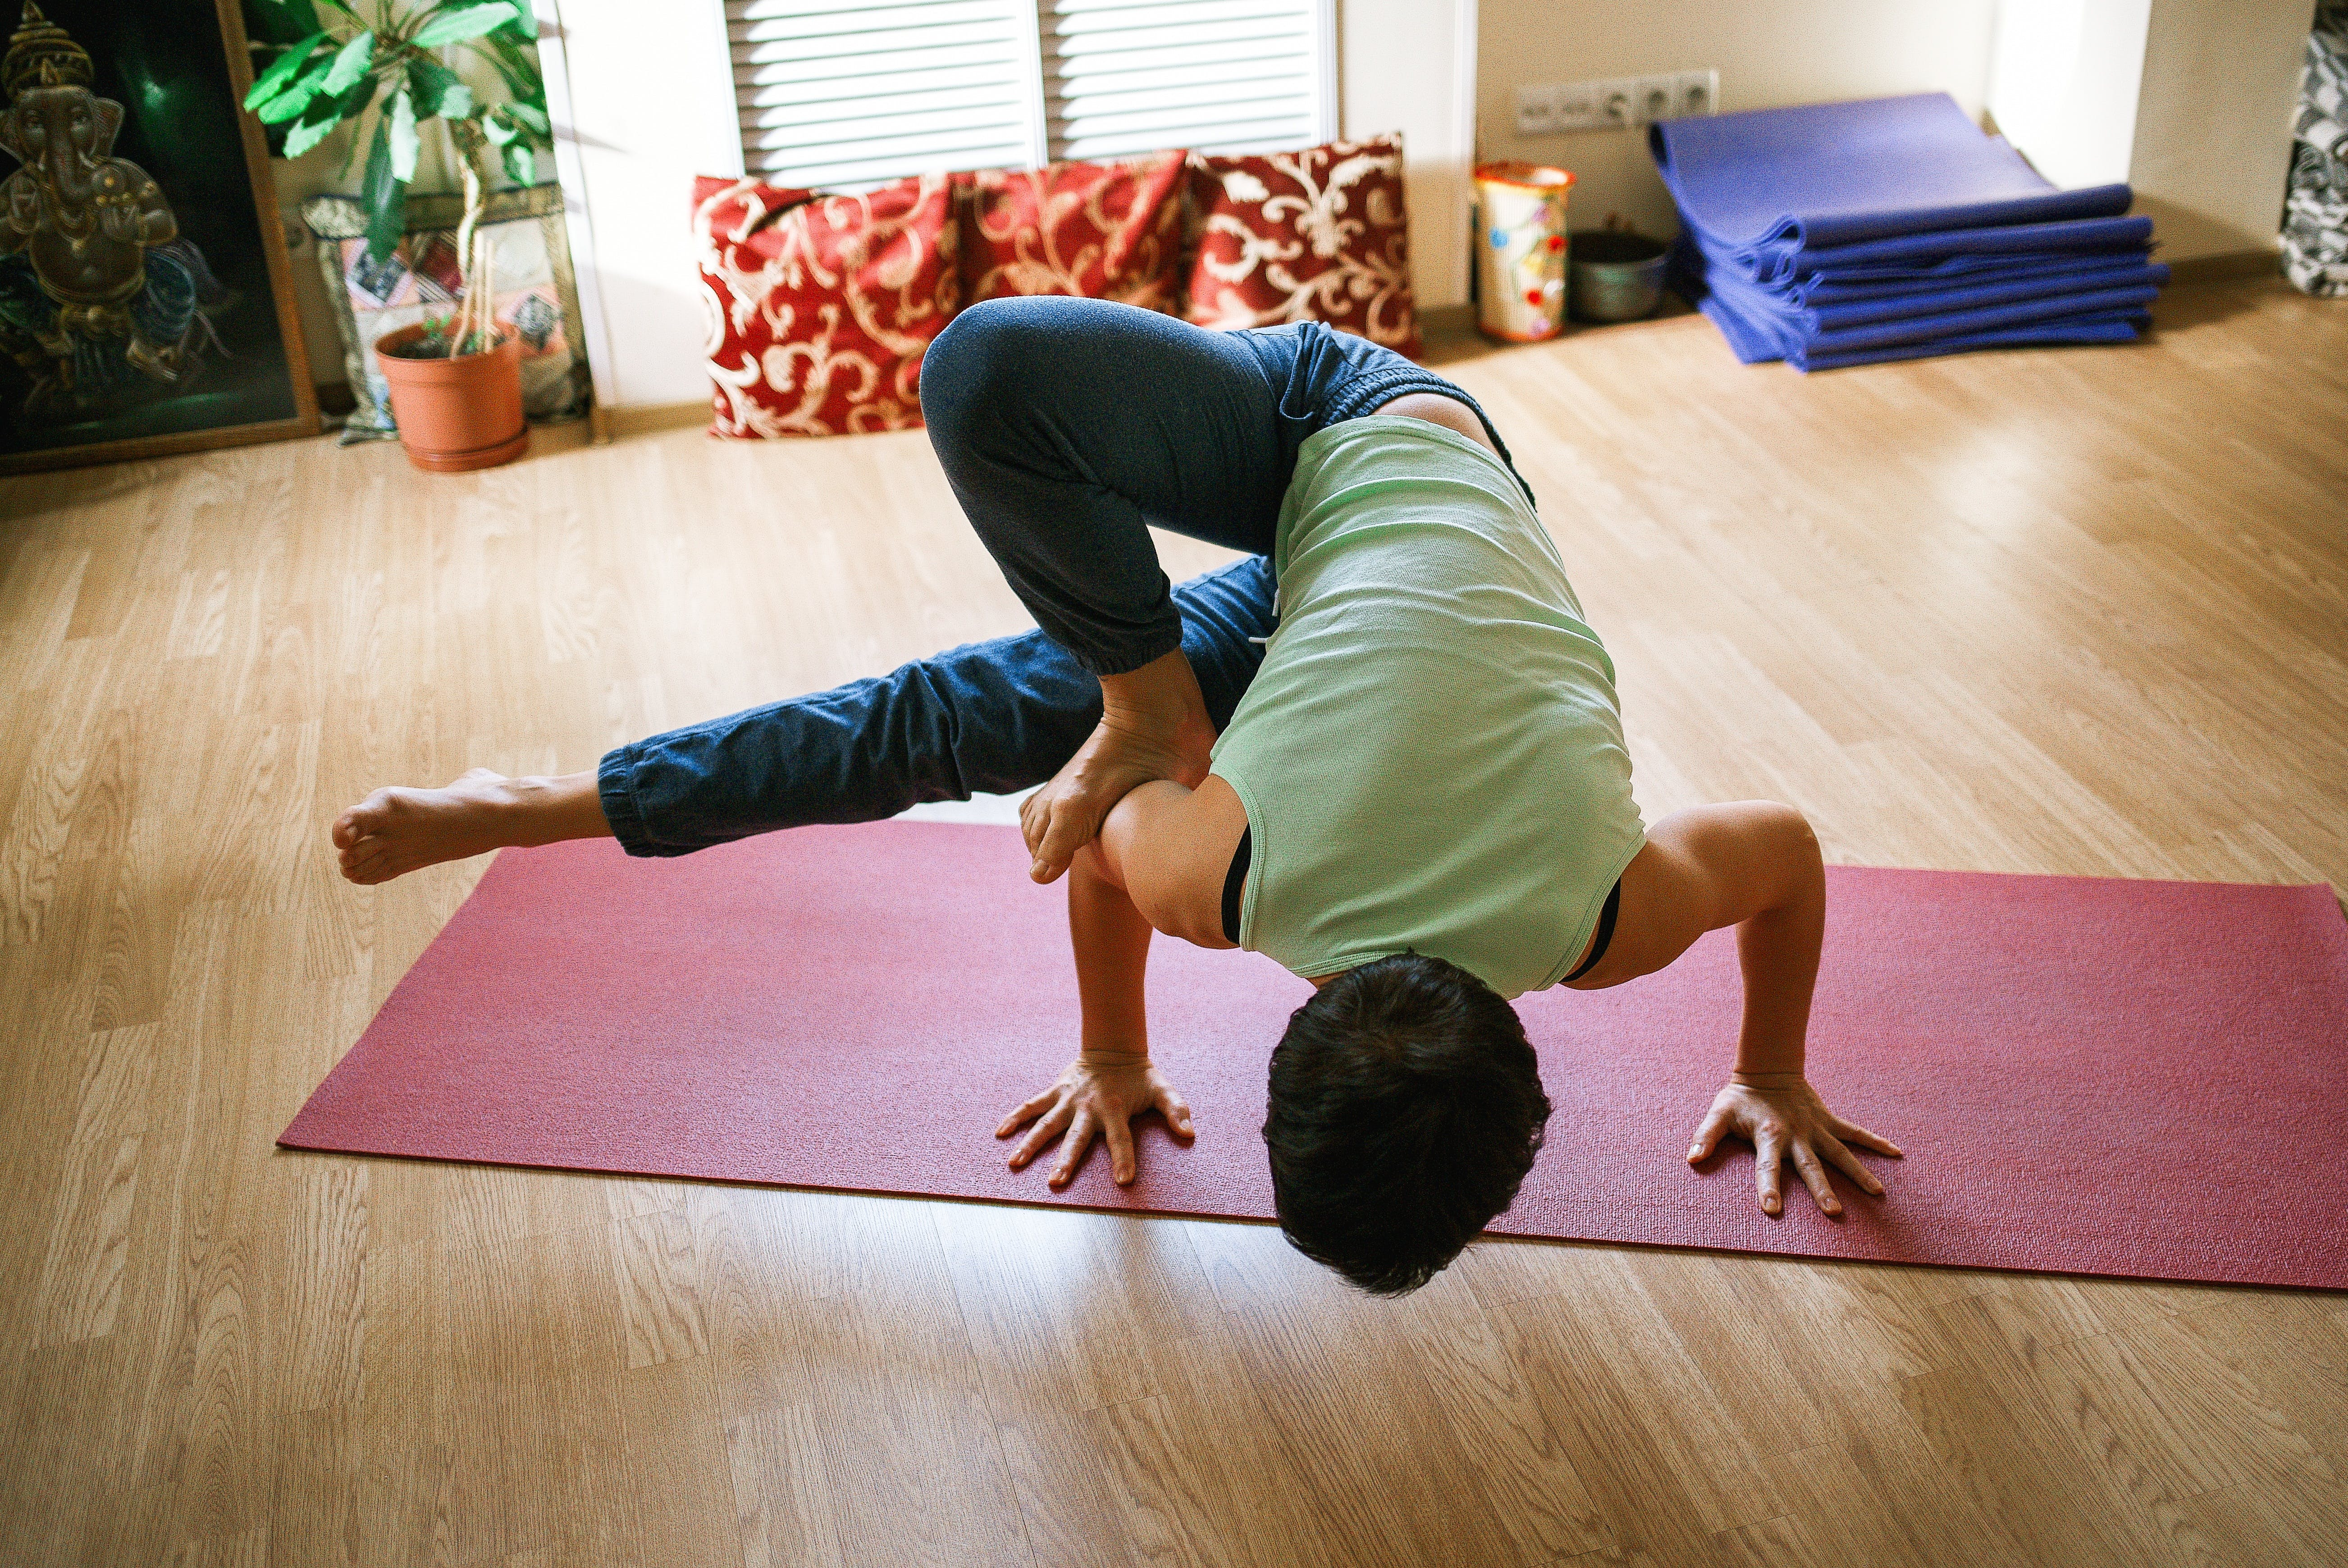 Man Making Yoga on Yoga Mat